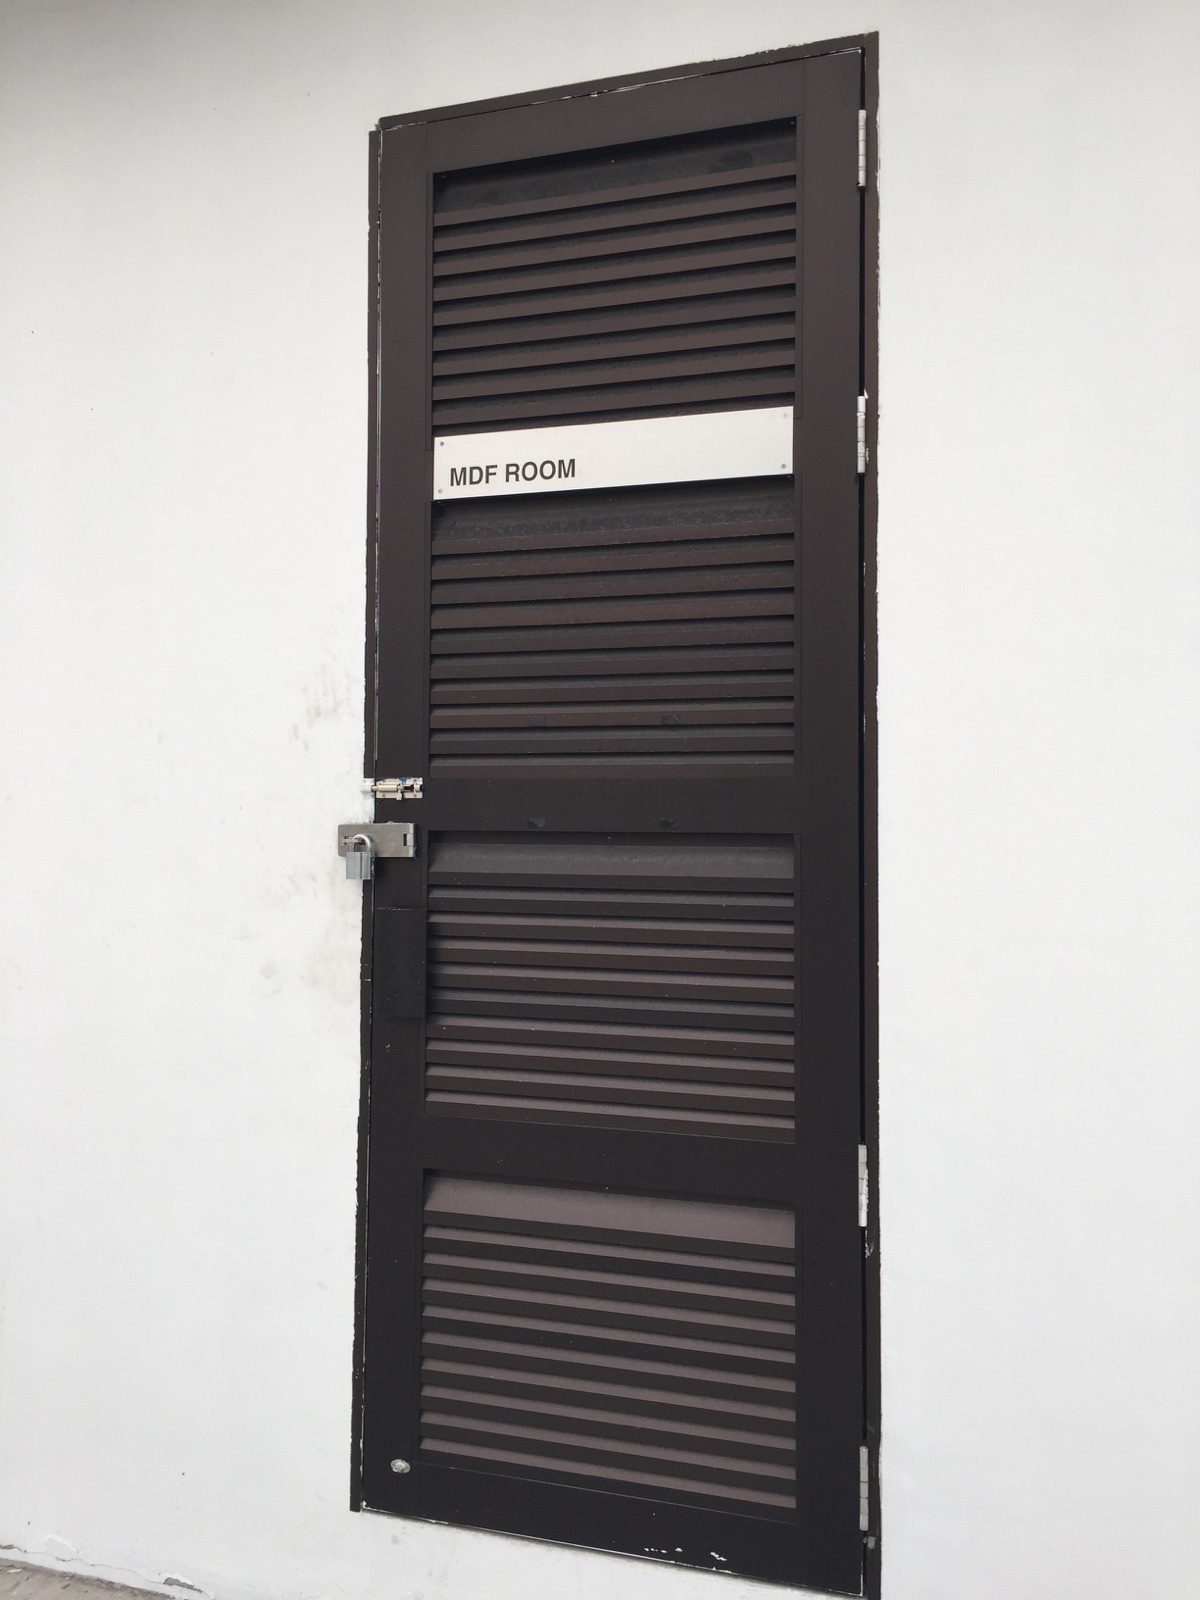 aluminium toilet louvers door spacedor marketing pte ltd : aluminium doors - pezcame.com